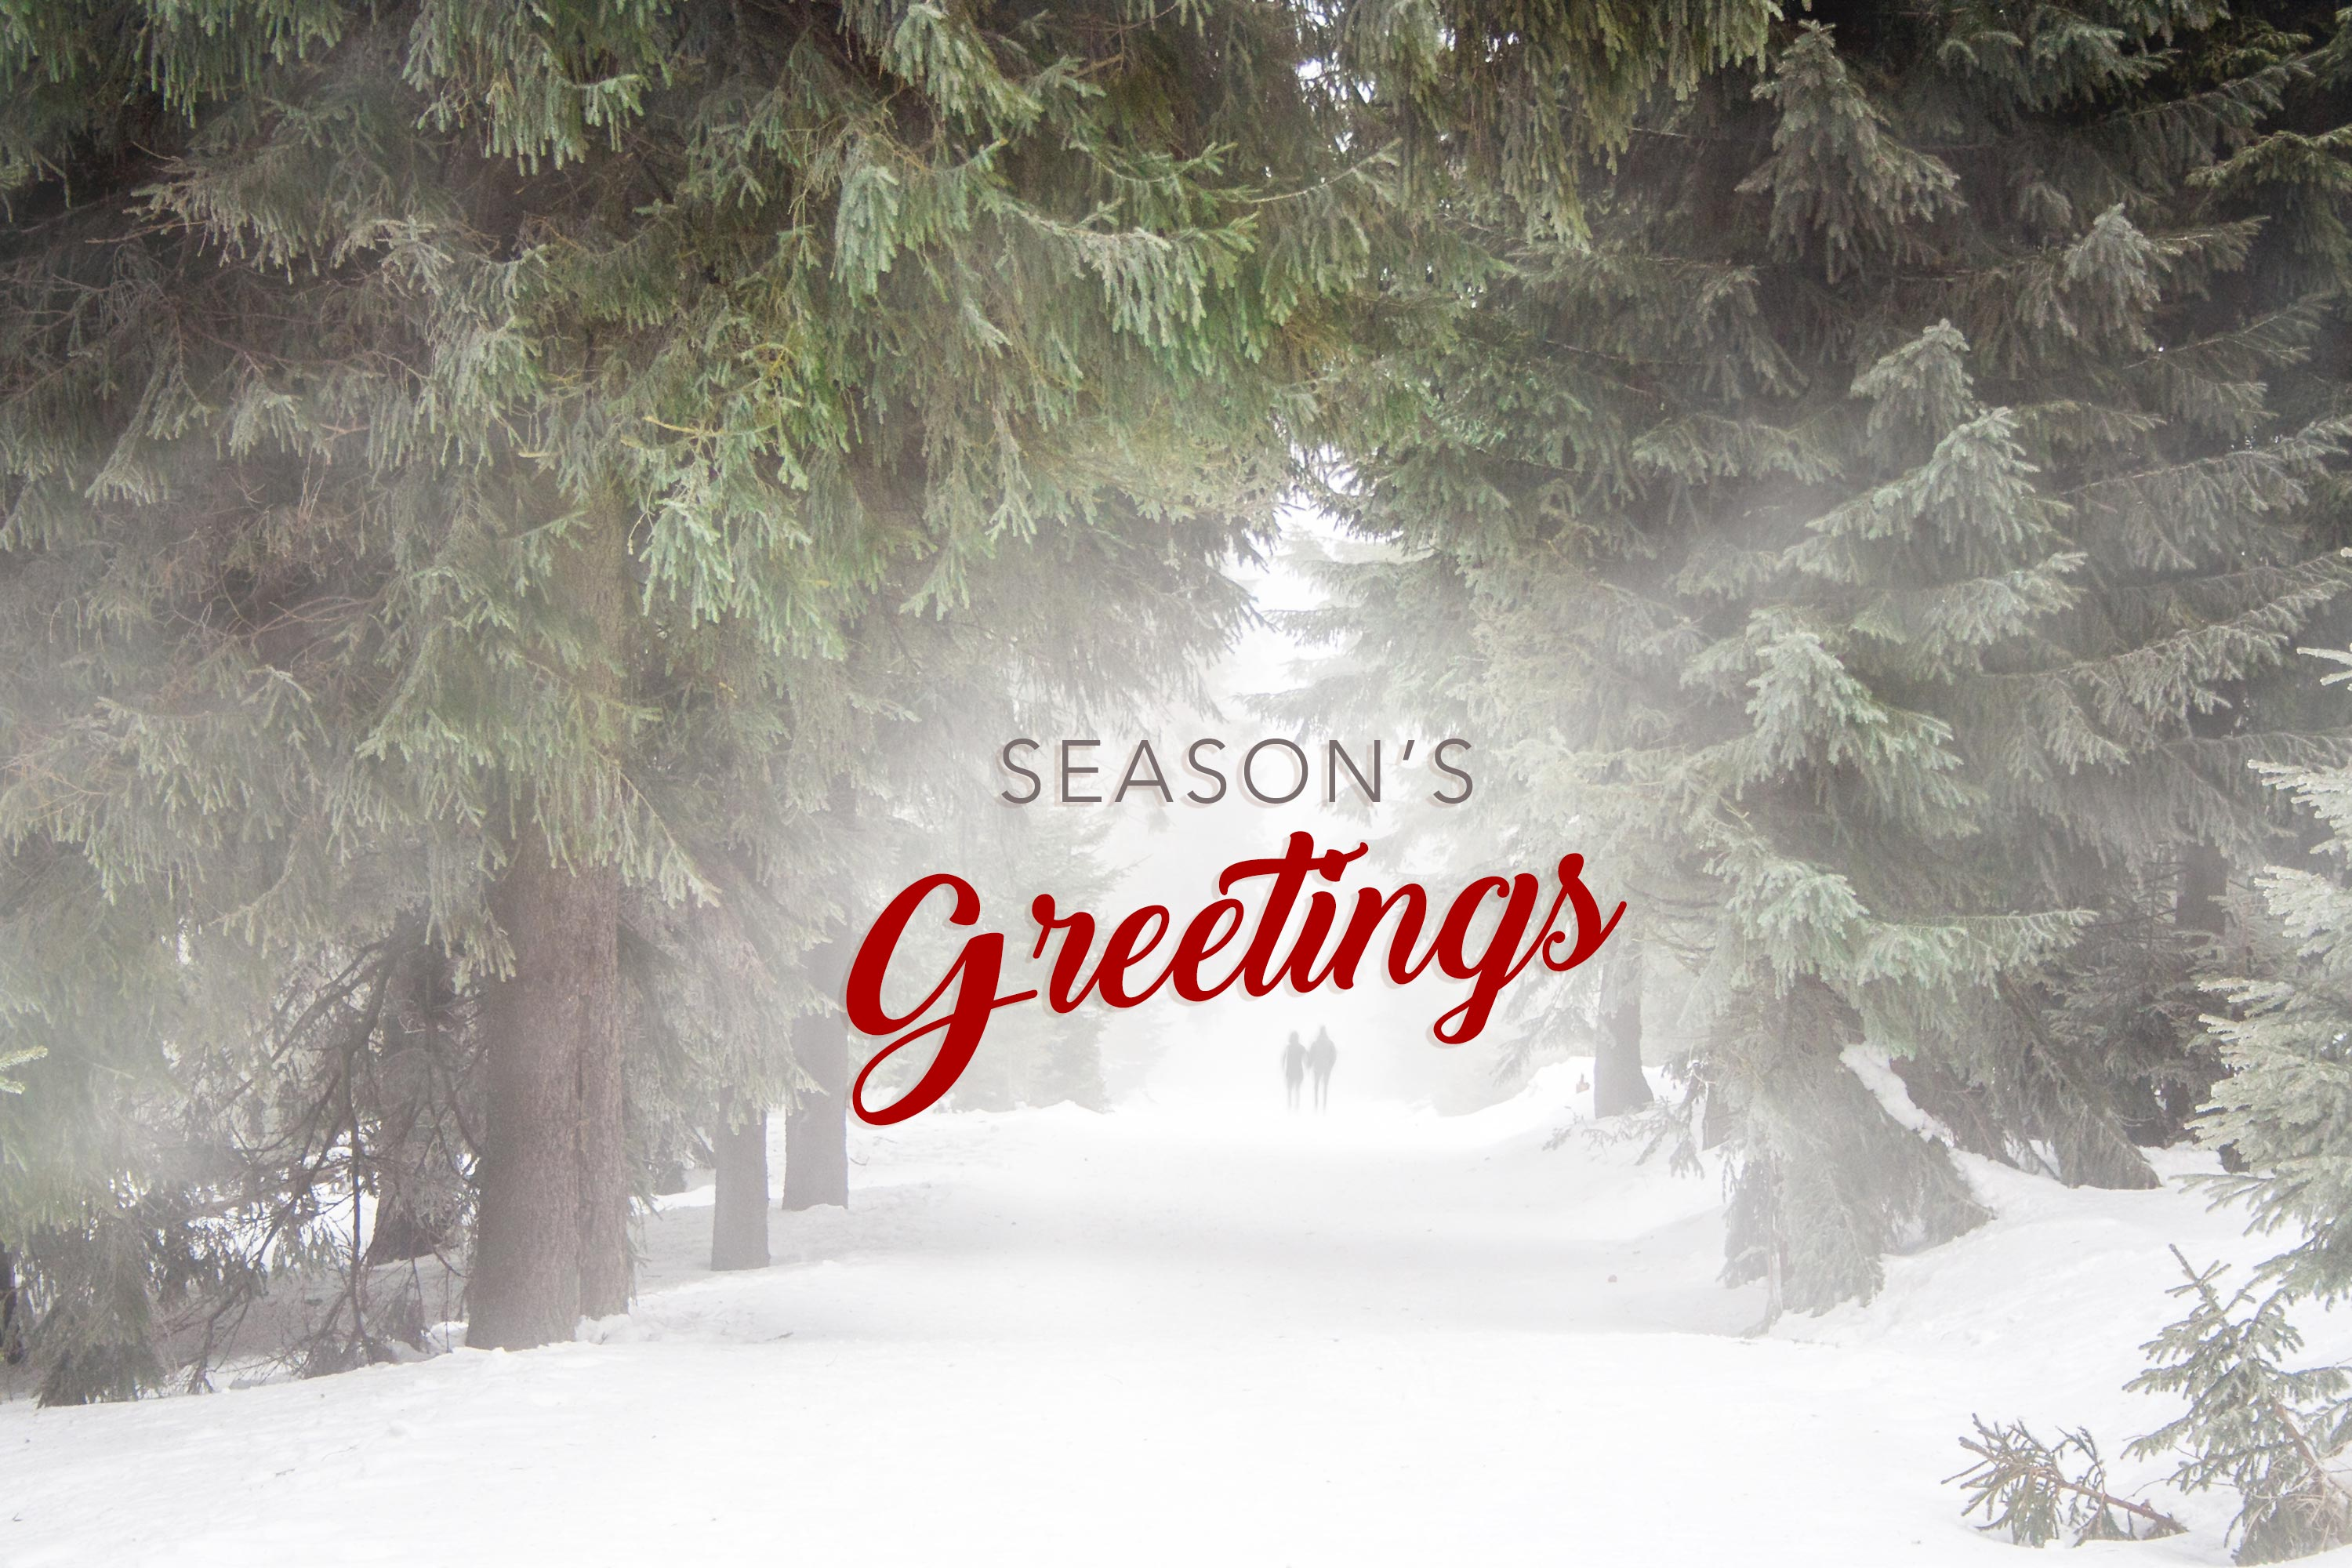 15 Seasons Greetings Cards Stock Images HD Wallpapers Winter 3000x2000